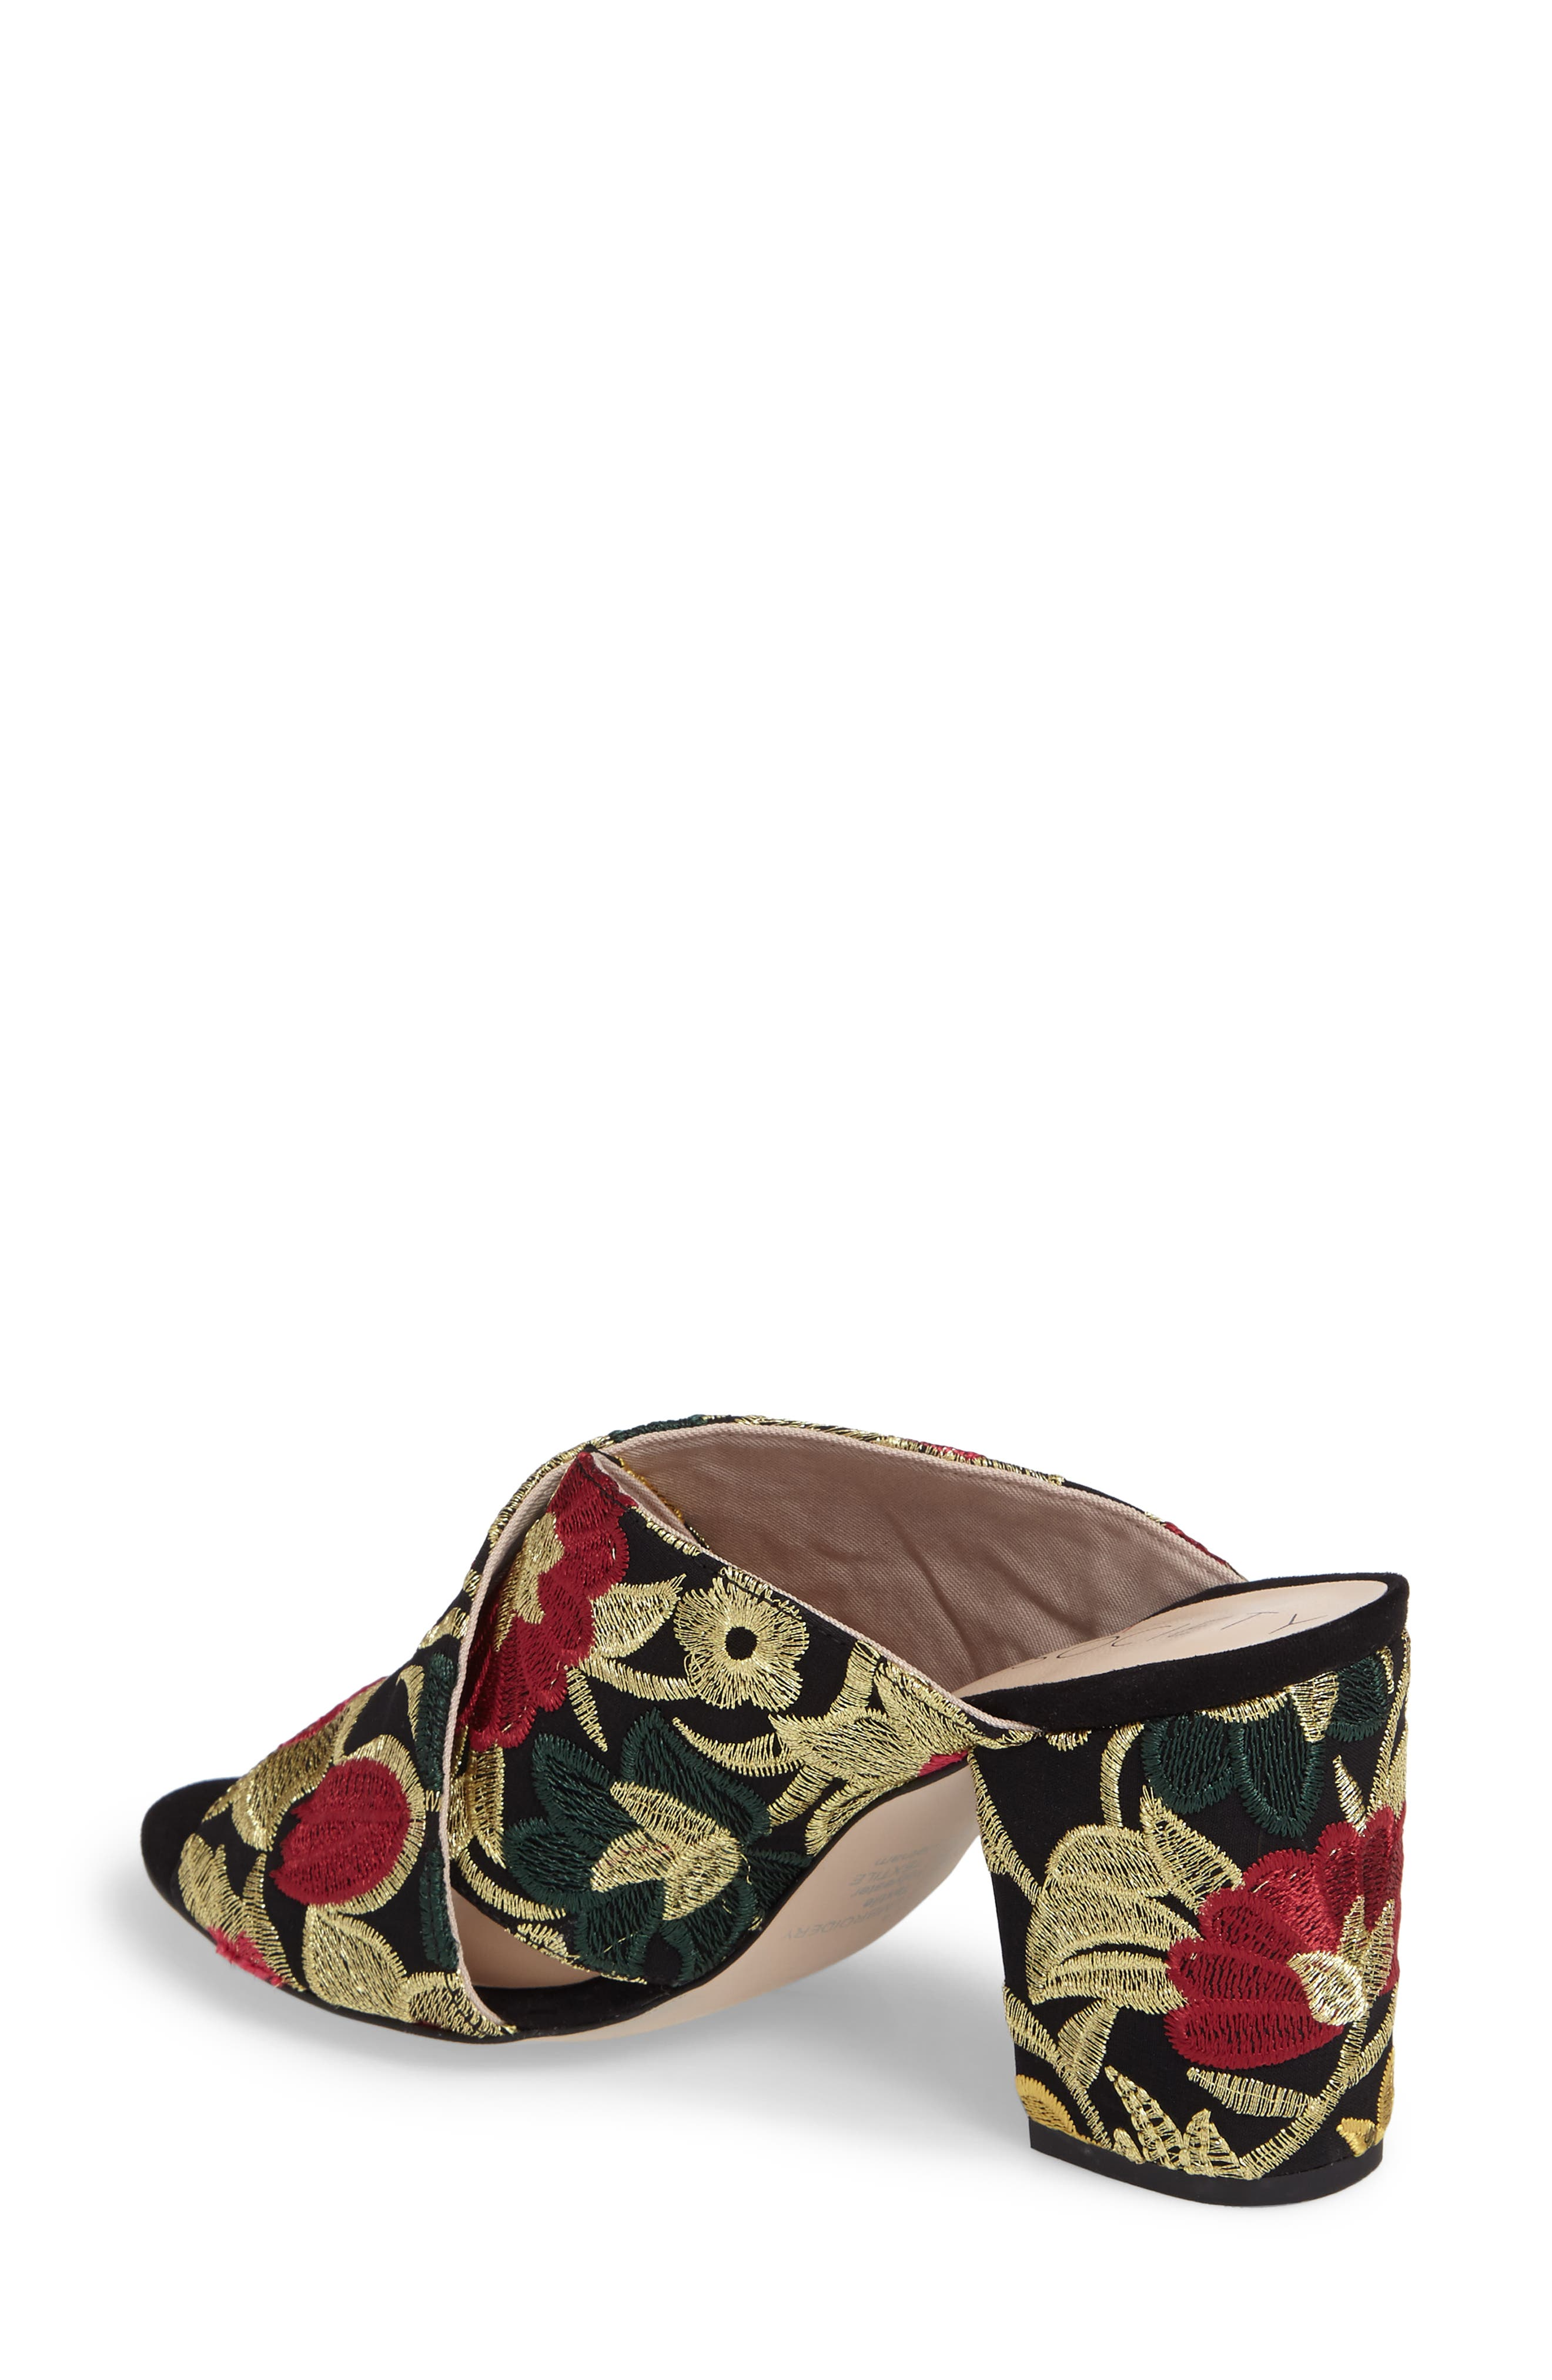 Luella Flower Embroidered Slide,                             Alternate thumbnail 2, color,                             Gold Embroidery Textile